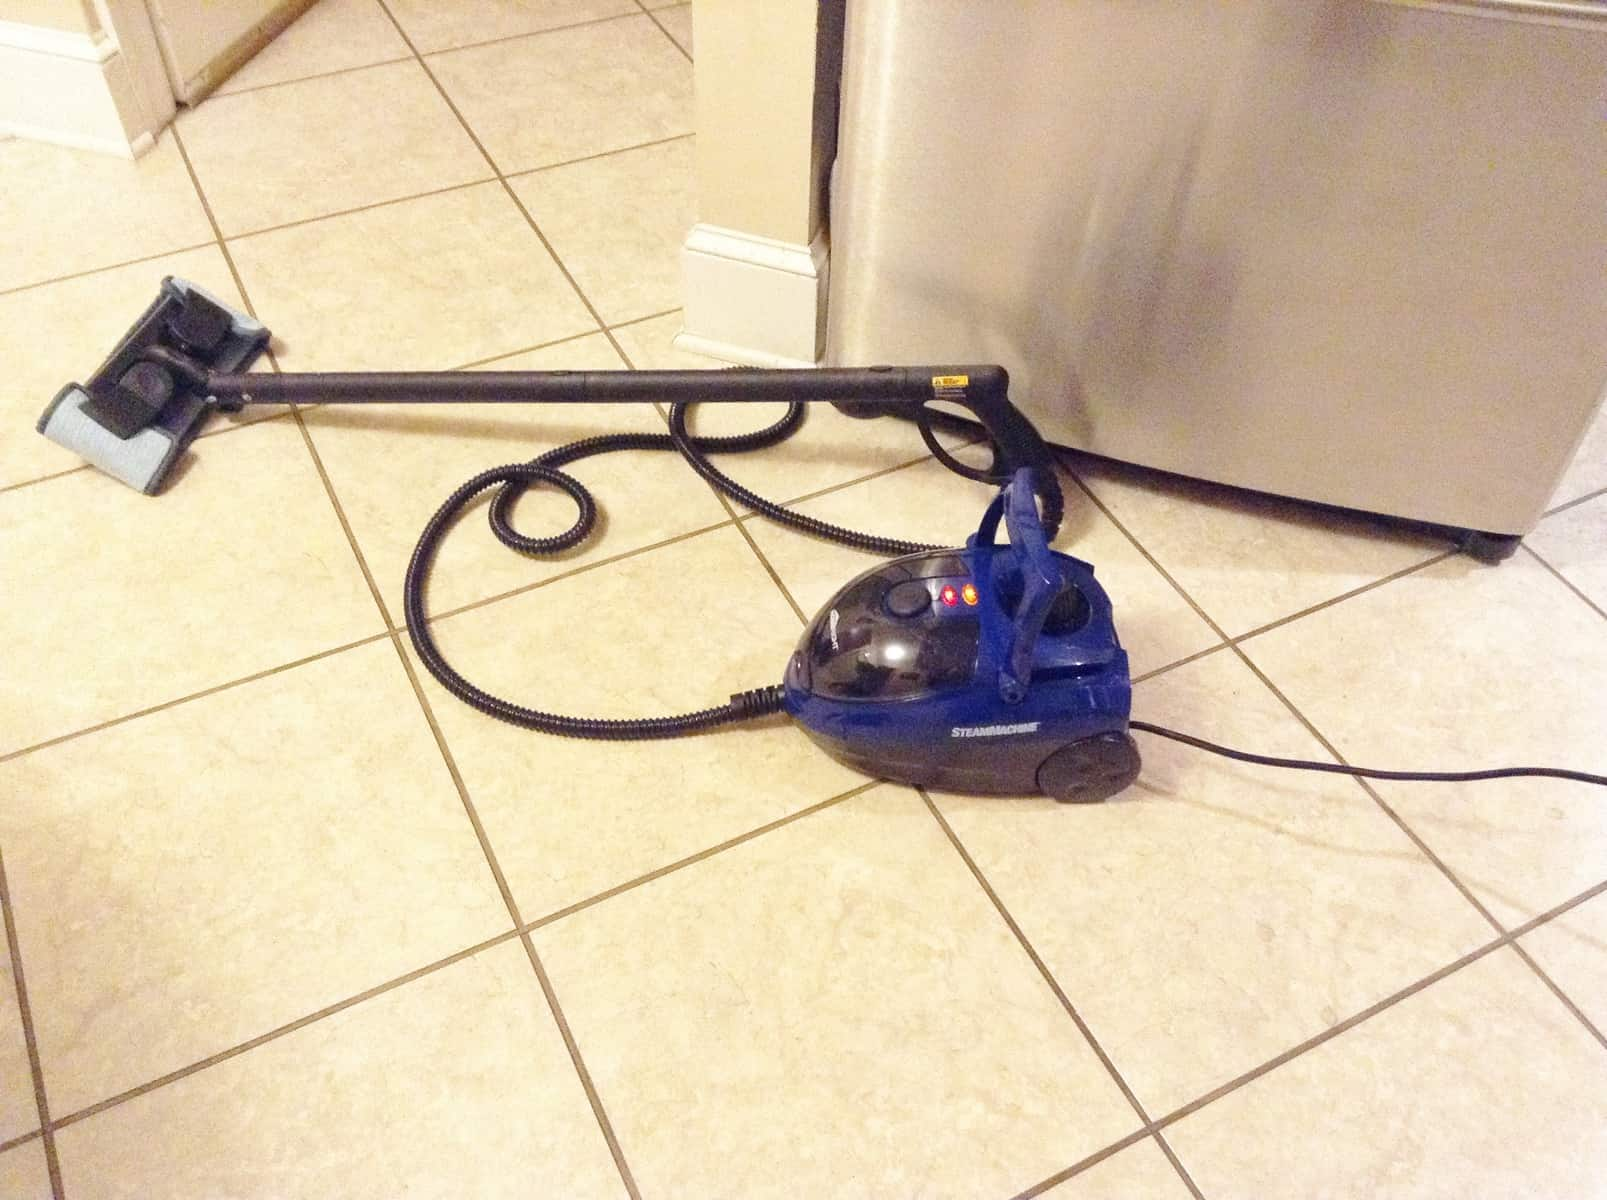 Kitchen Floor Steam Cleaner Hot Stuff Steam Clean The House Without Chemicals Heartworkorgcom